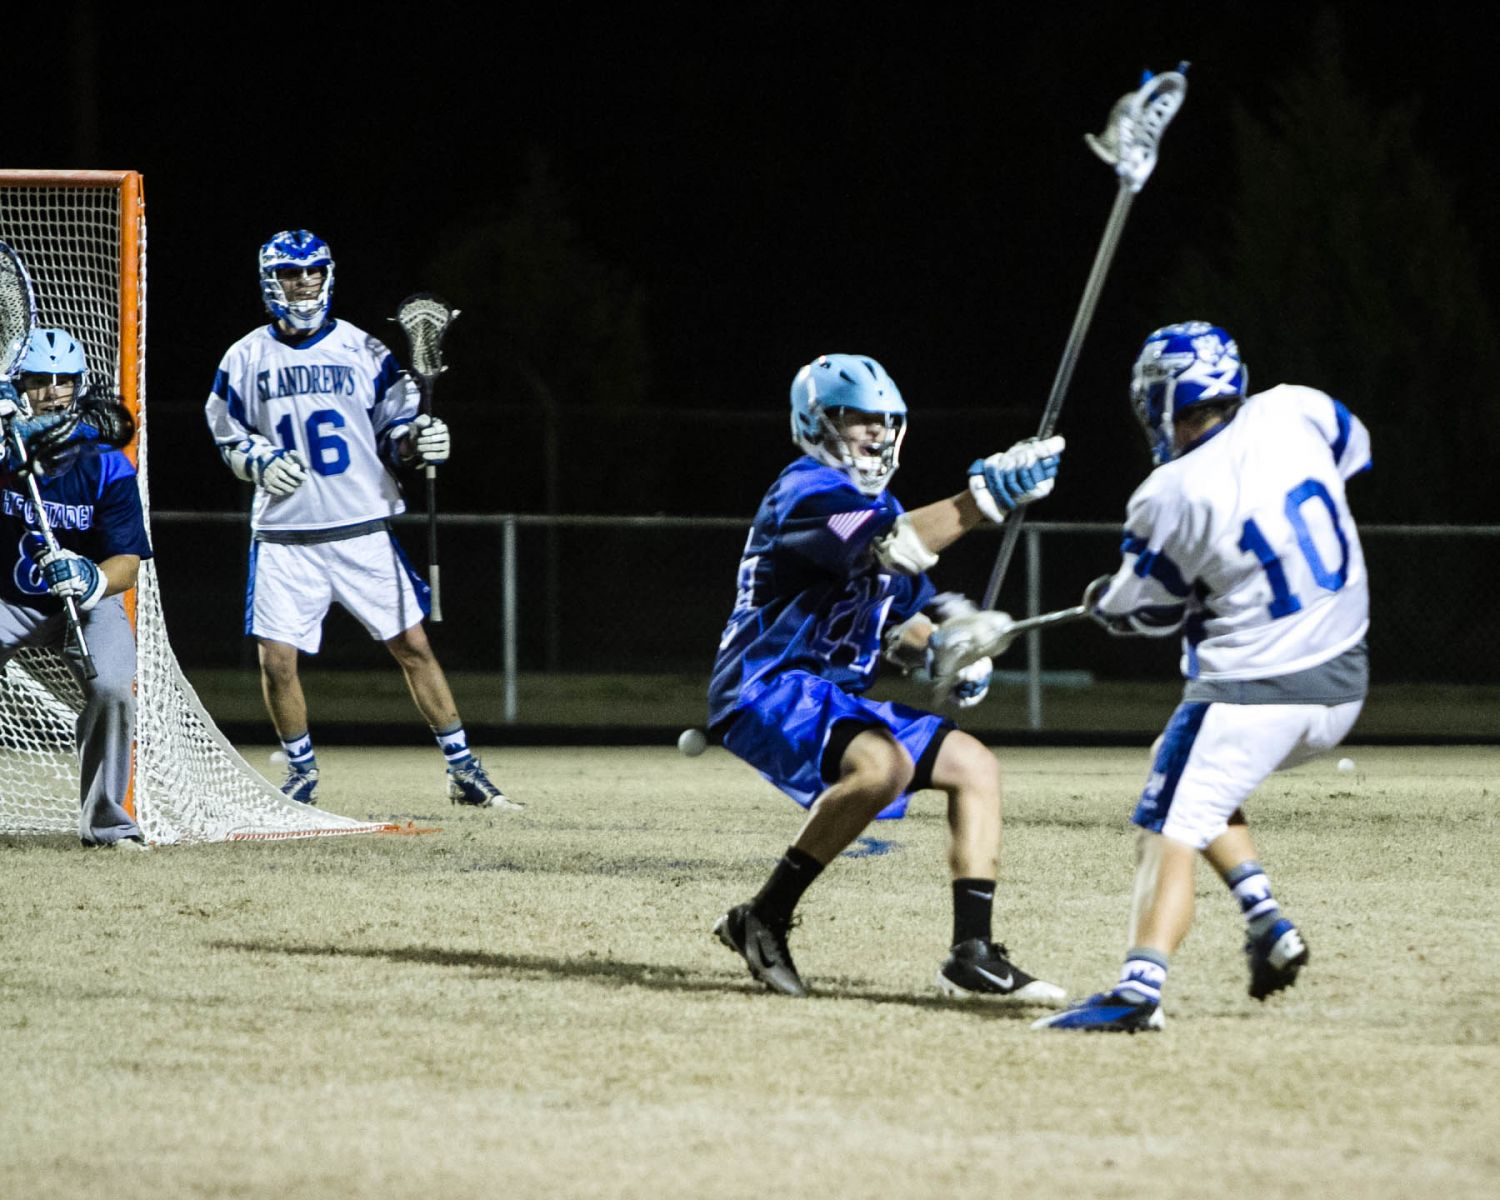 25Men's Lacrosse ousts the Citadel 9-8 in home opener | St. Andrews  University Athletics